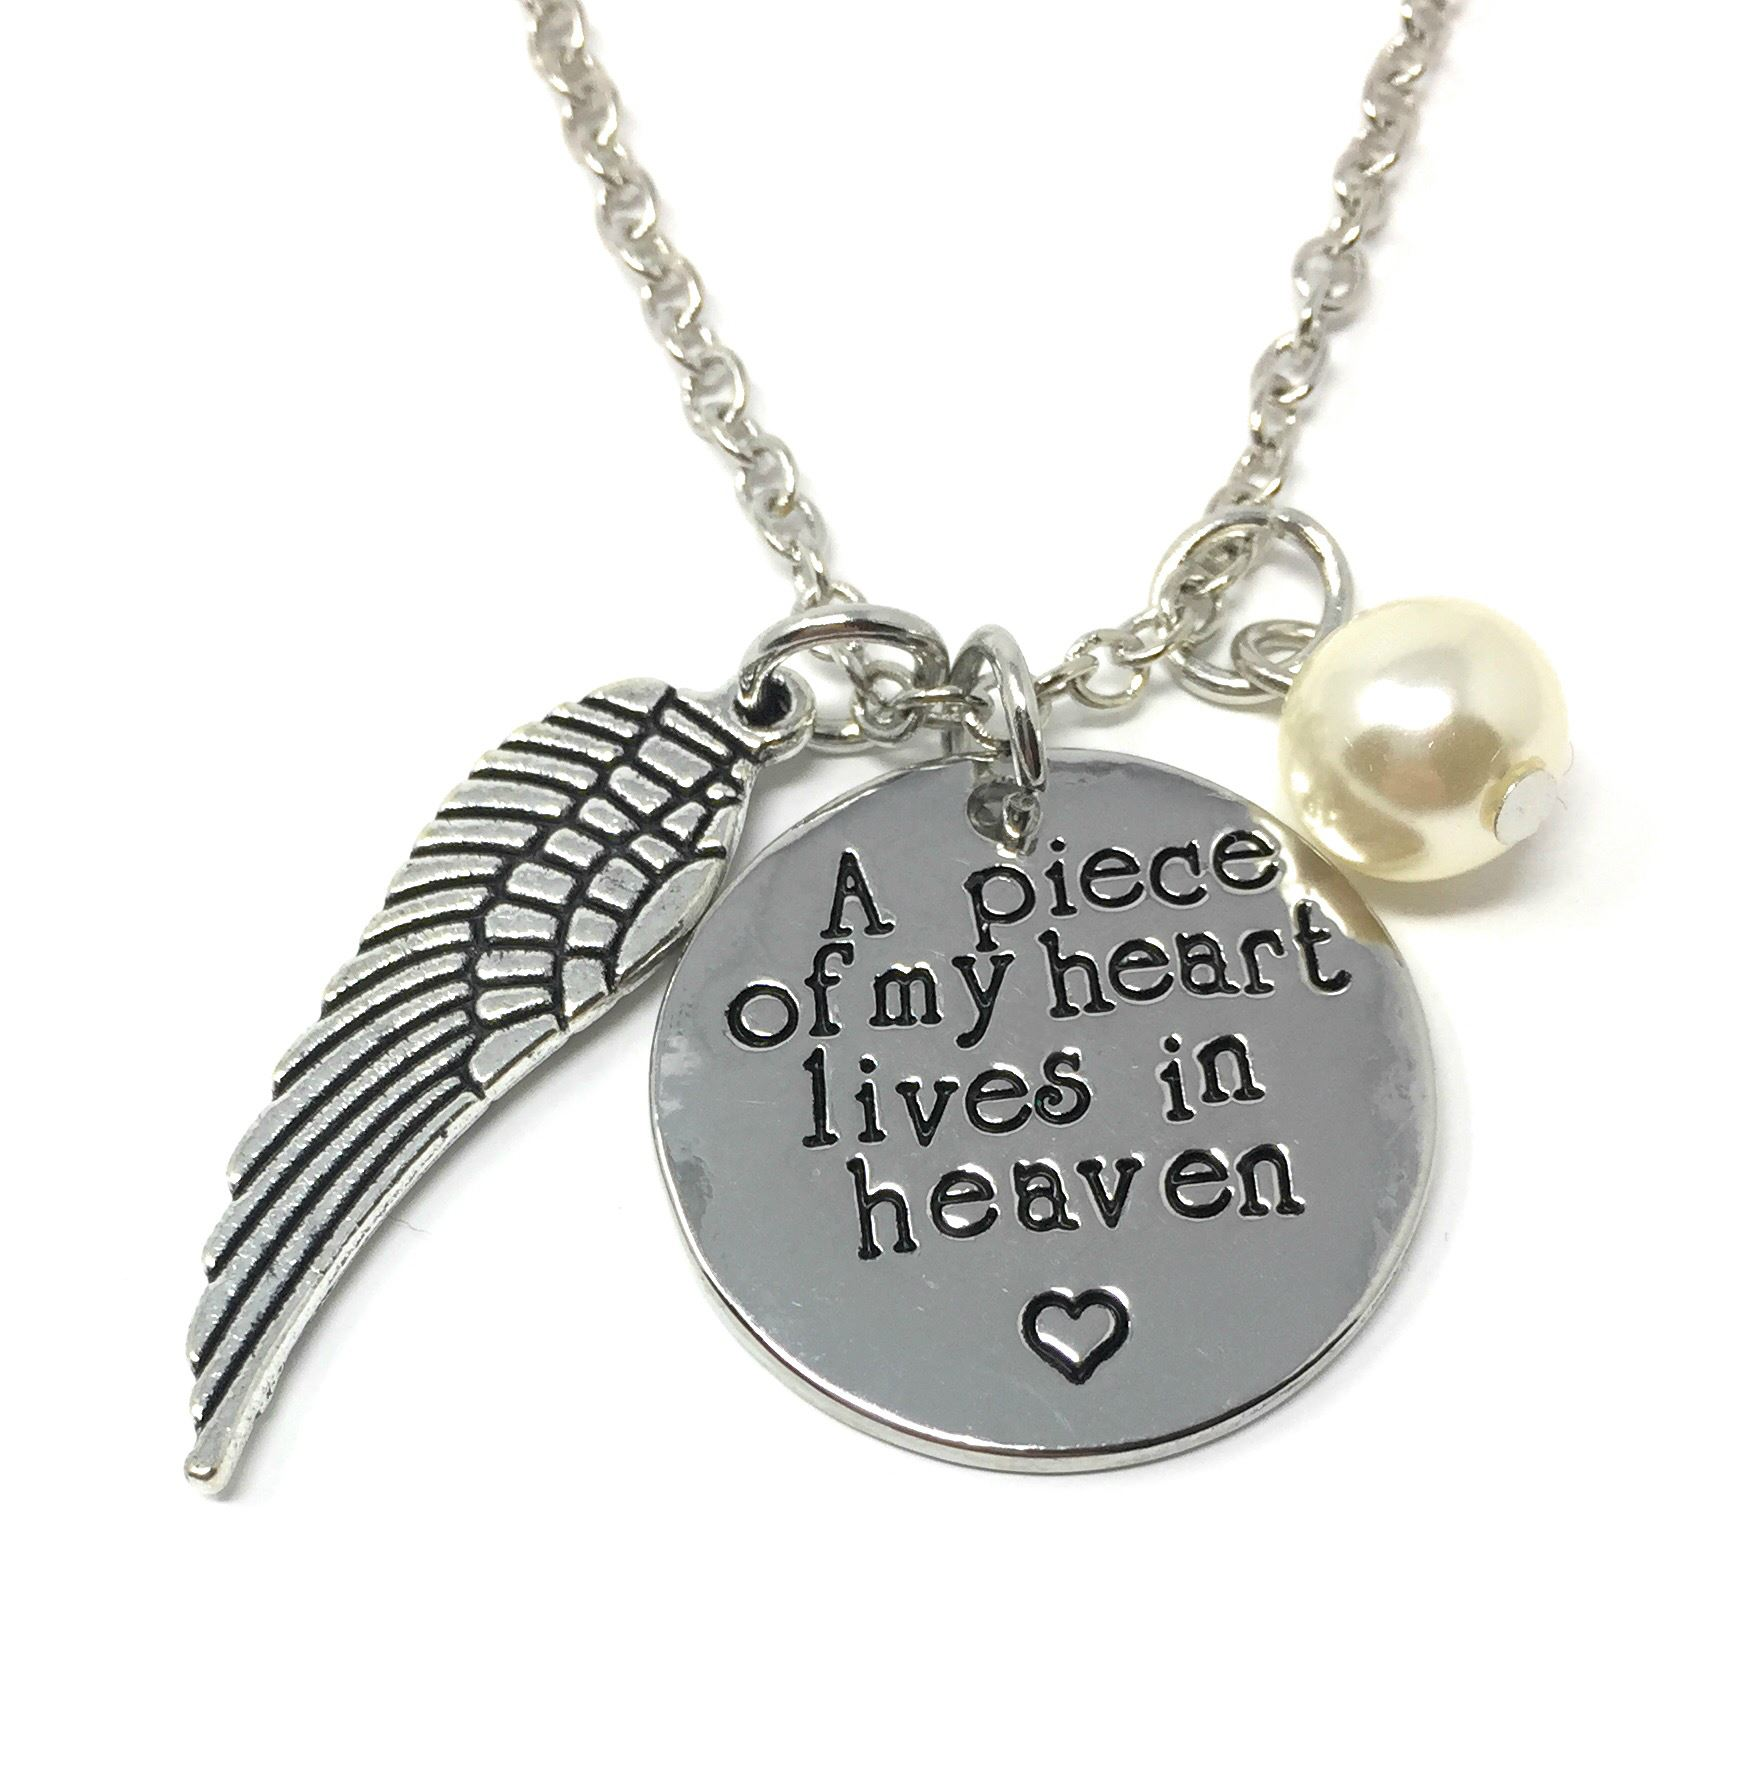 baf9ff8593227 Details about 925 Silver Plt 'A Piece Of My Heart Lives In Heaven' Loss  Engraved Necklace D